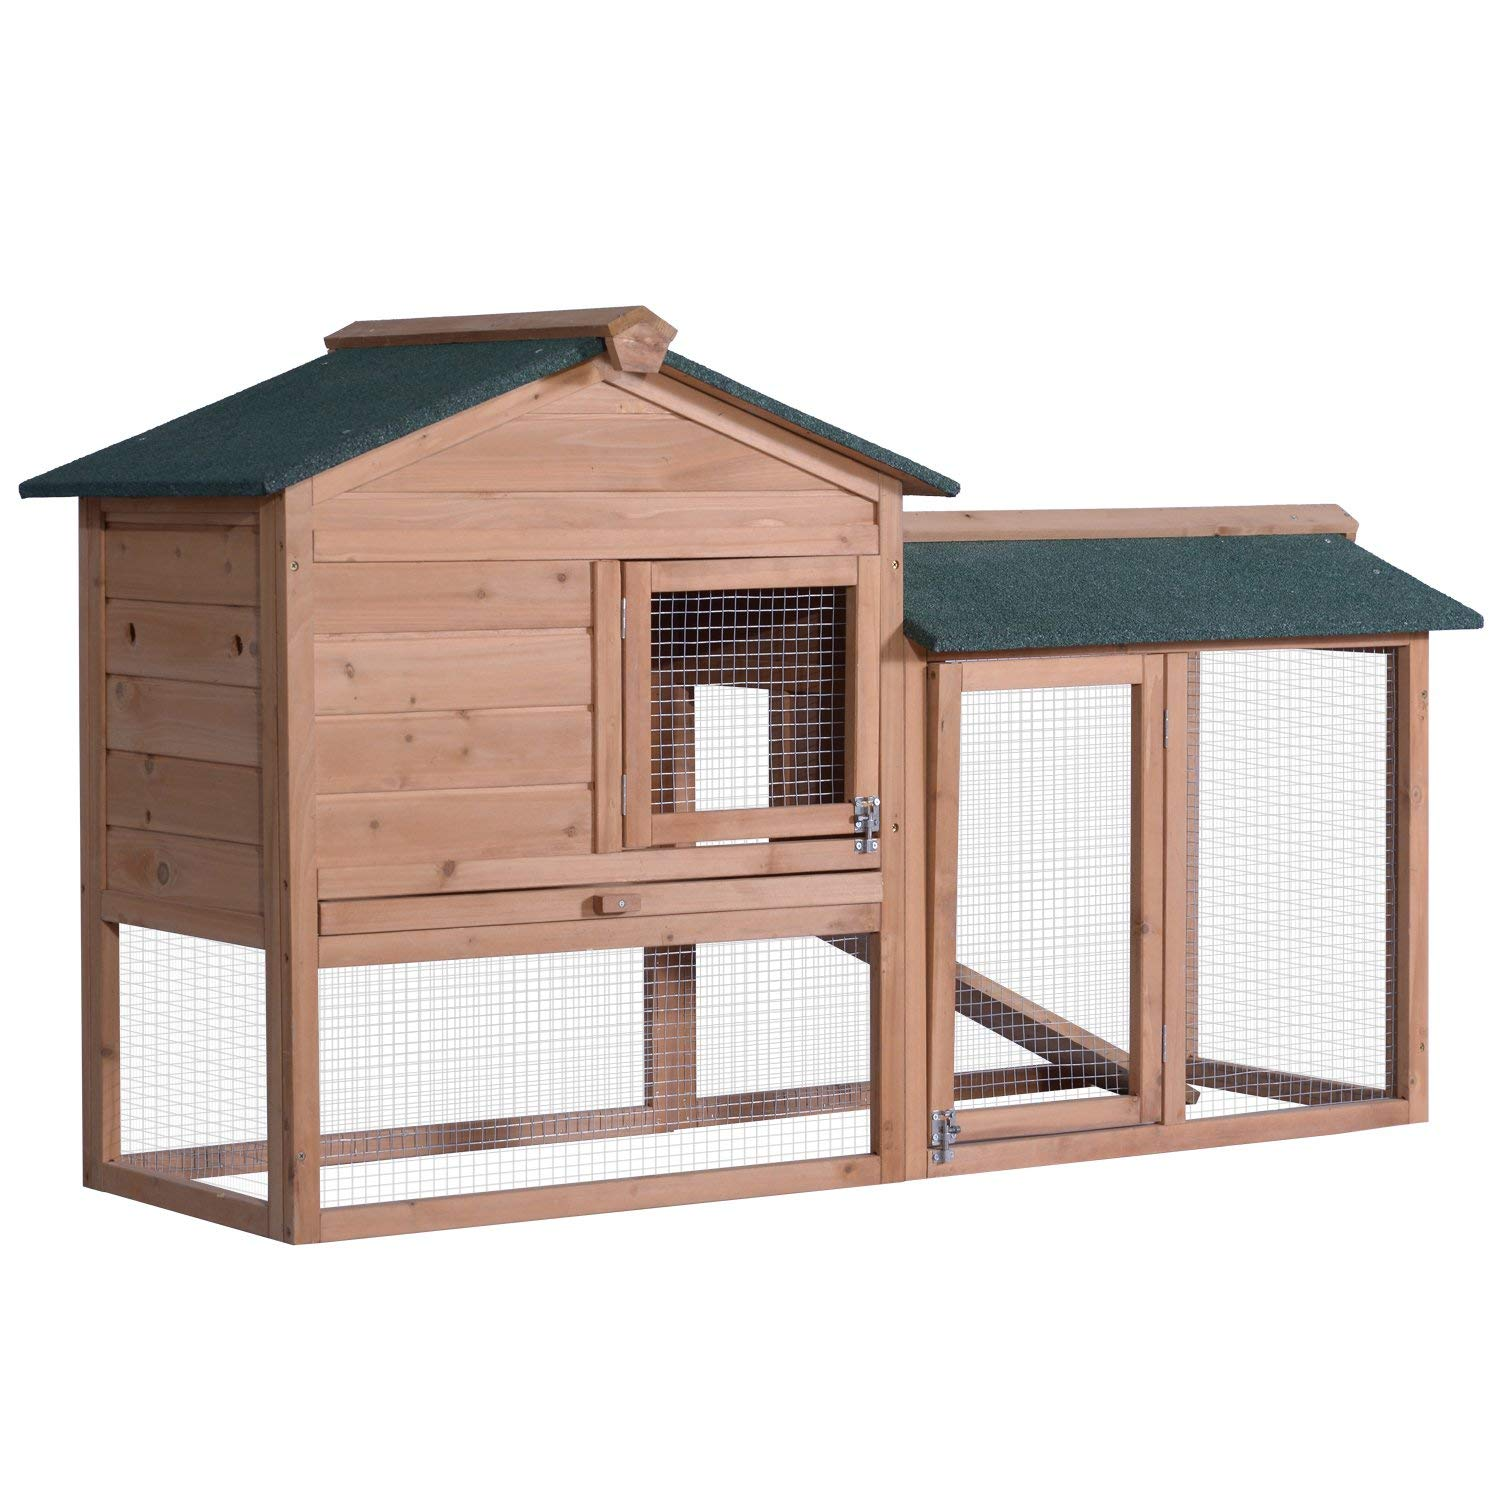 Lovupet 58'' Deluxe Wooden Chicken Coop Hen House Outdoor Backyard Garden Bunny Rabbit Hutch with Ventilation Door, Removable Tray and Ramp 1305 by Exacme